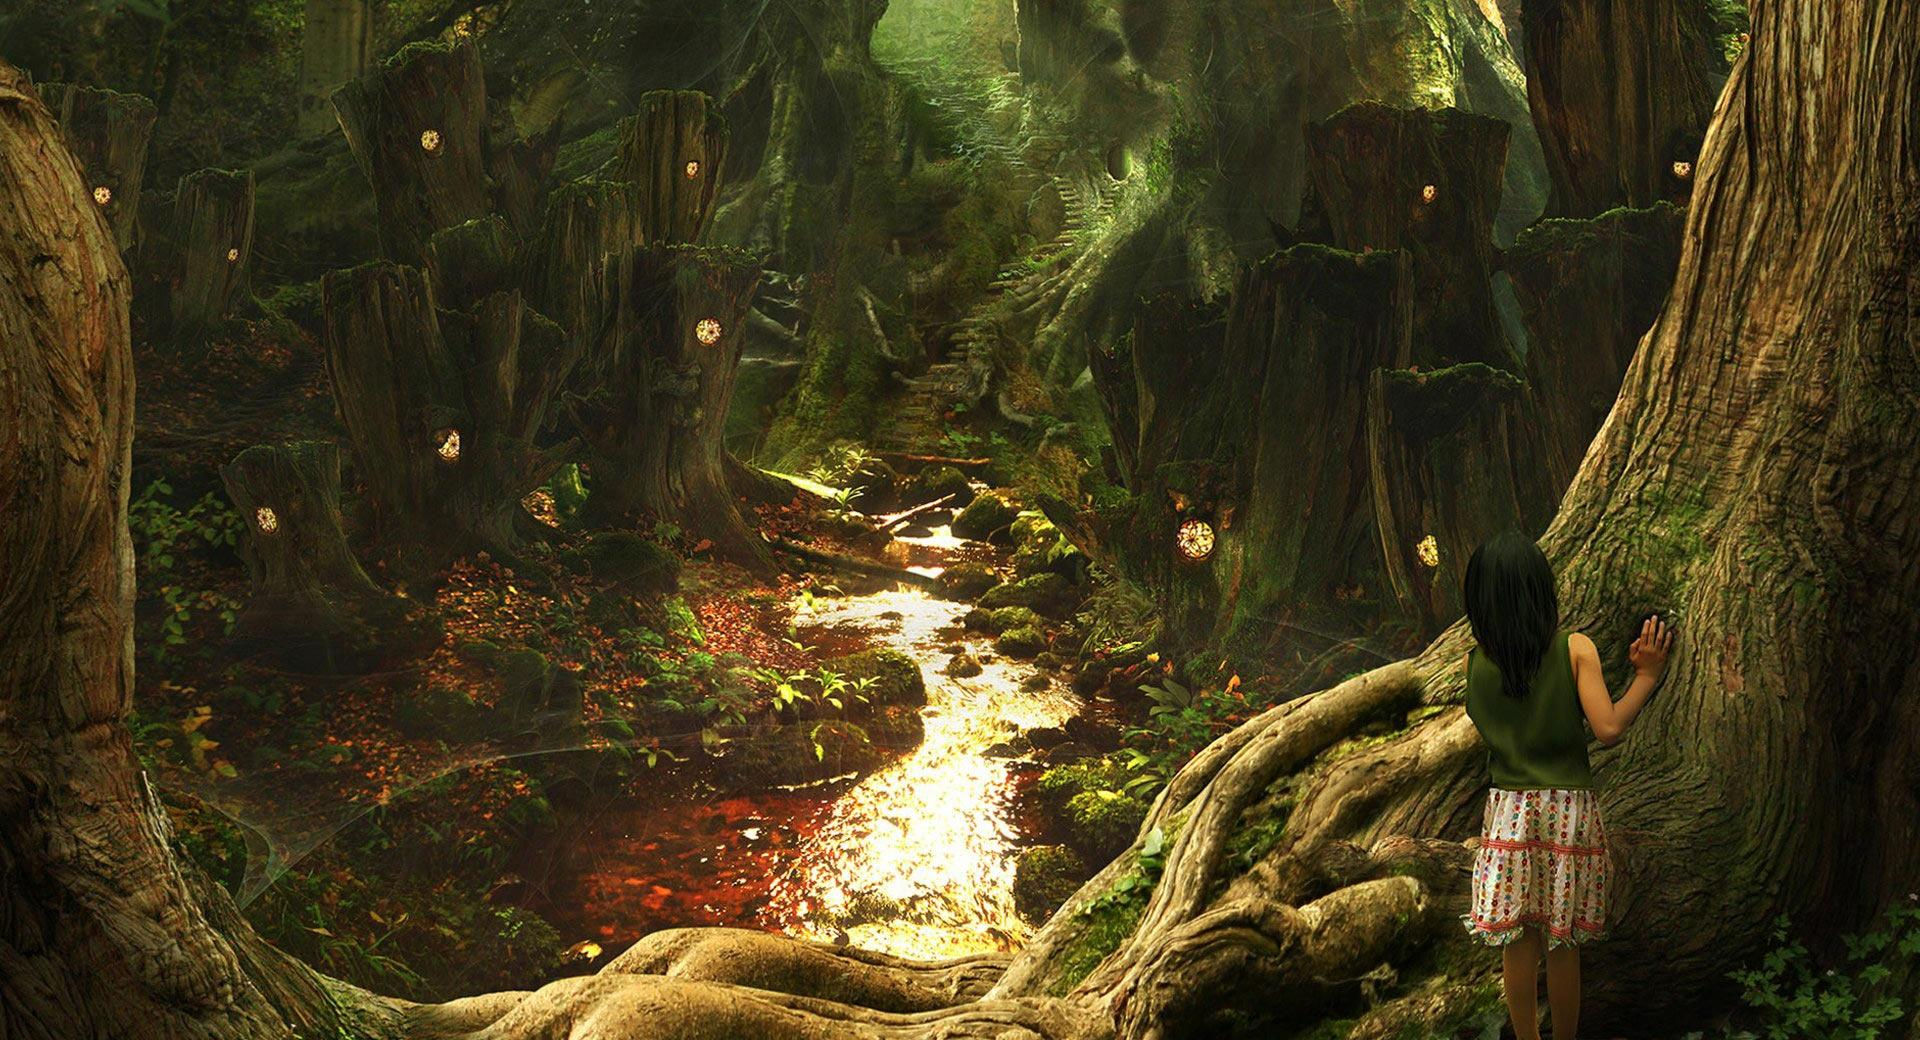 Fantasy Art Scenery by Phil McDarby wallpapers HD quality